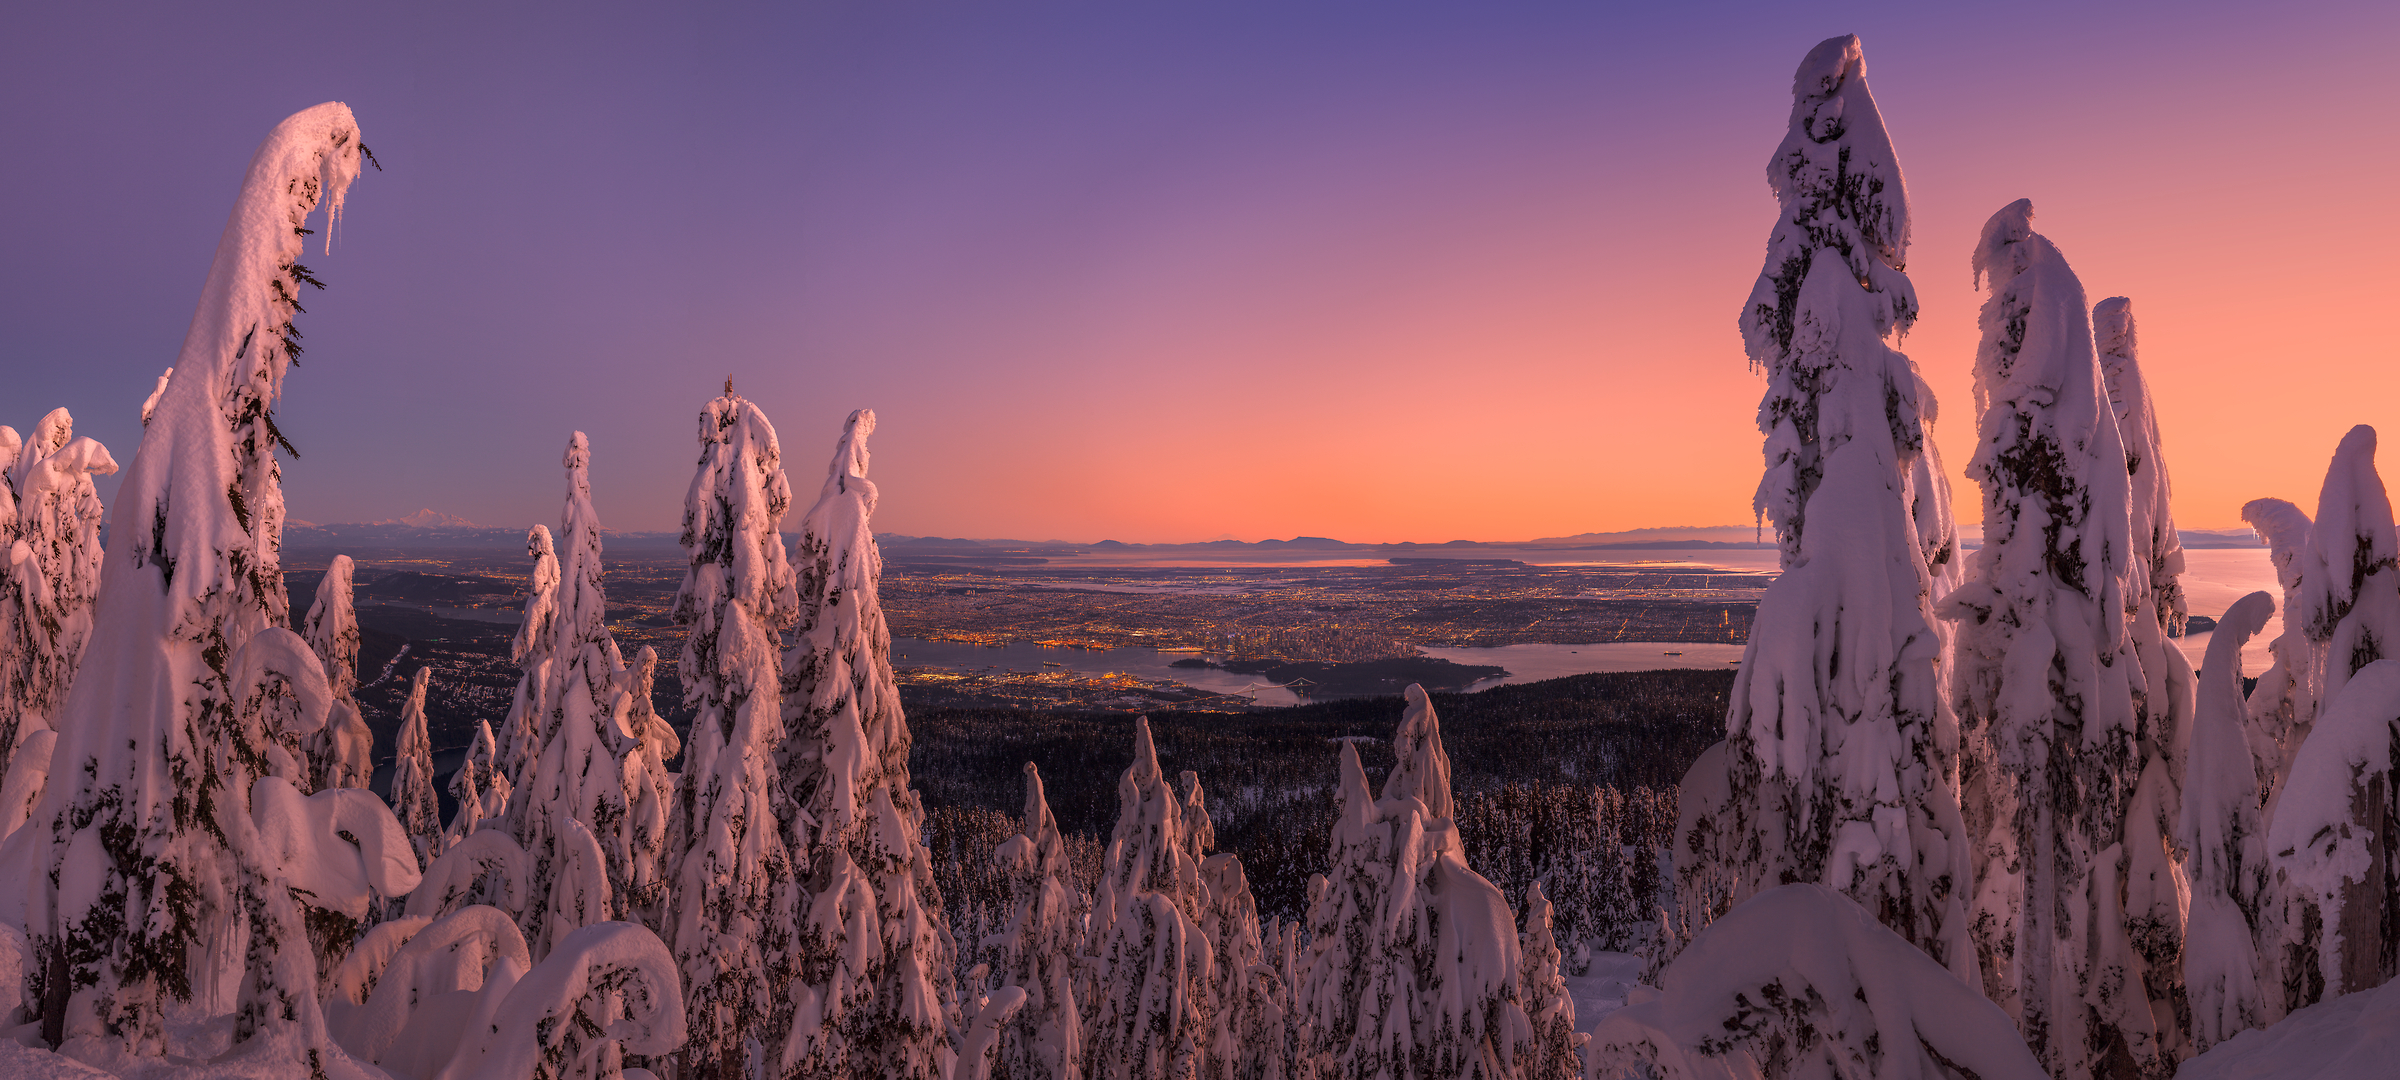 443 megapixels! A very high resolution, large-format VAST photo print of snow-covered trees overlooking a city at sunset from Hollyburn Peak; fine art landscape photo created by Chris Collacott in West Vancouver, British Columbia, Canada